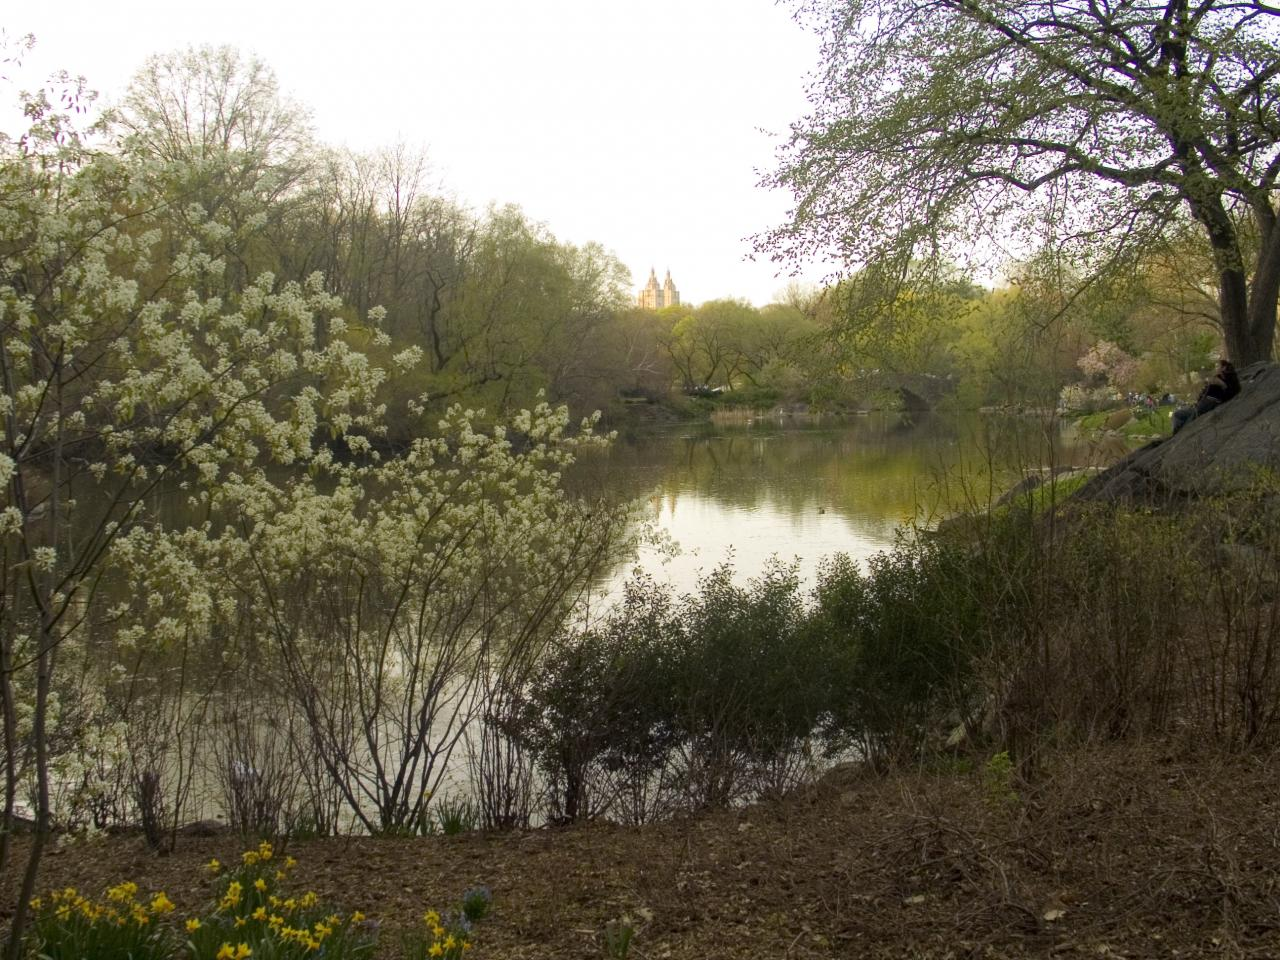 Central Park Spring, 2006, digital photograph by Orin Buck.